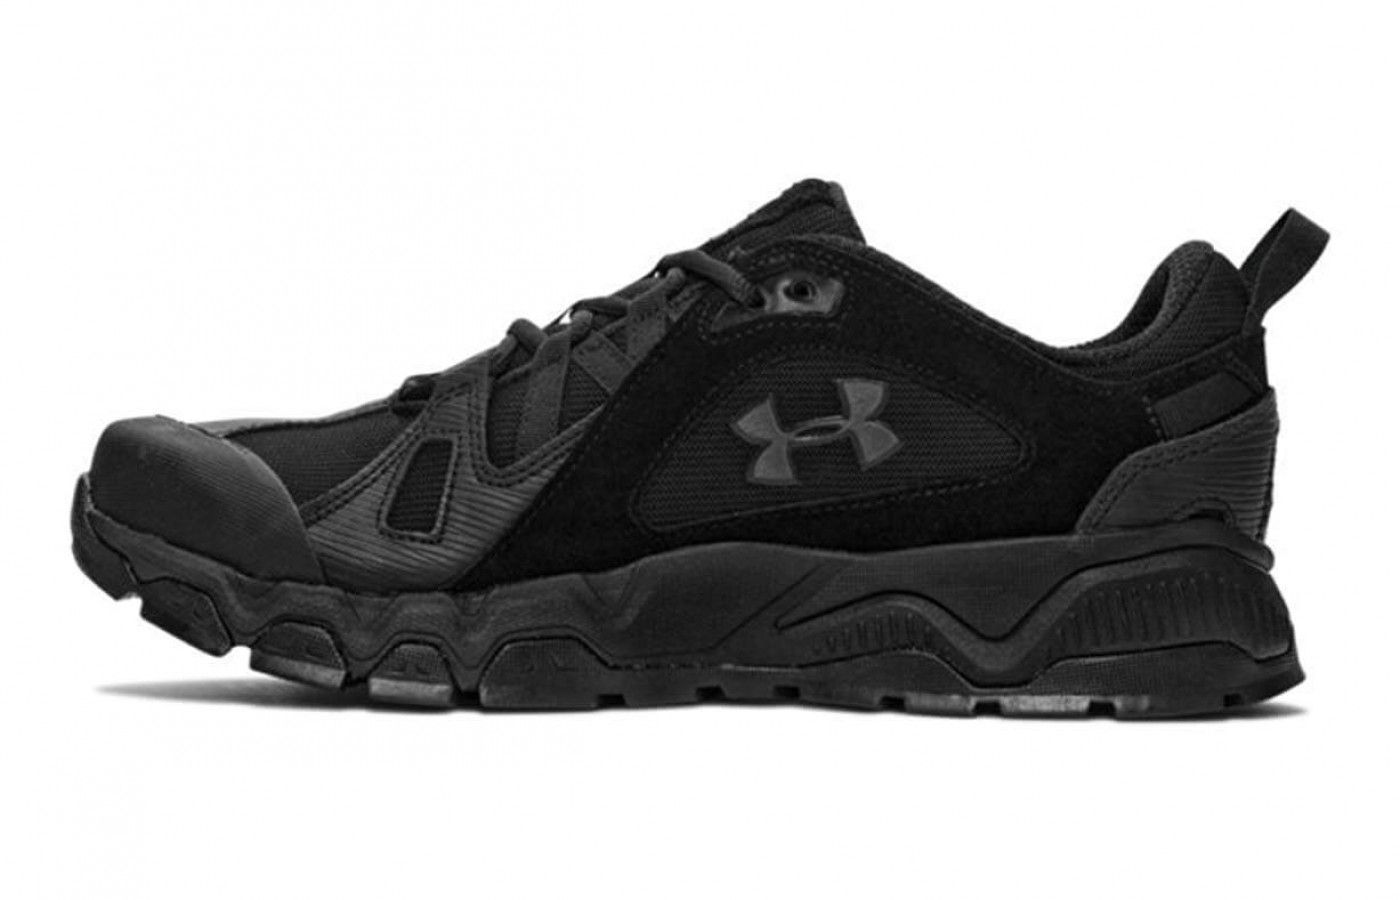 Under armour, Armour, Running shoes